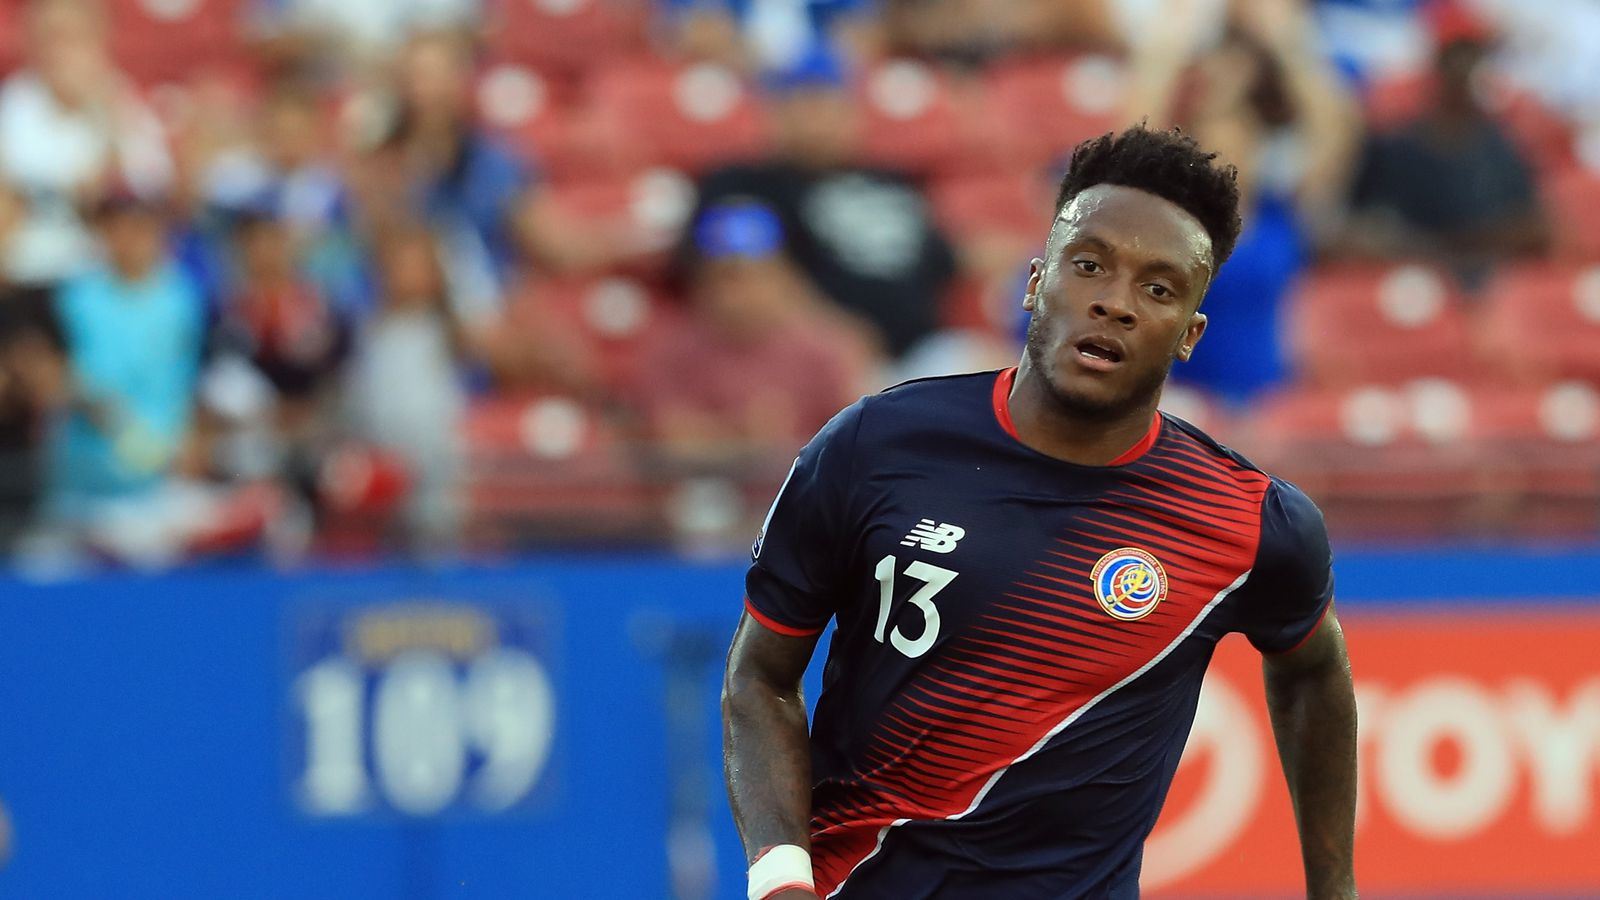 Costa Rica vs. Panama 2017 live stream: Time, TV channel, and how to watch Gold Cup online